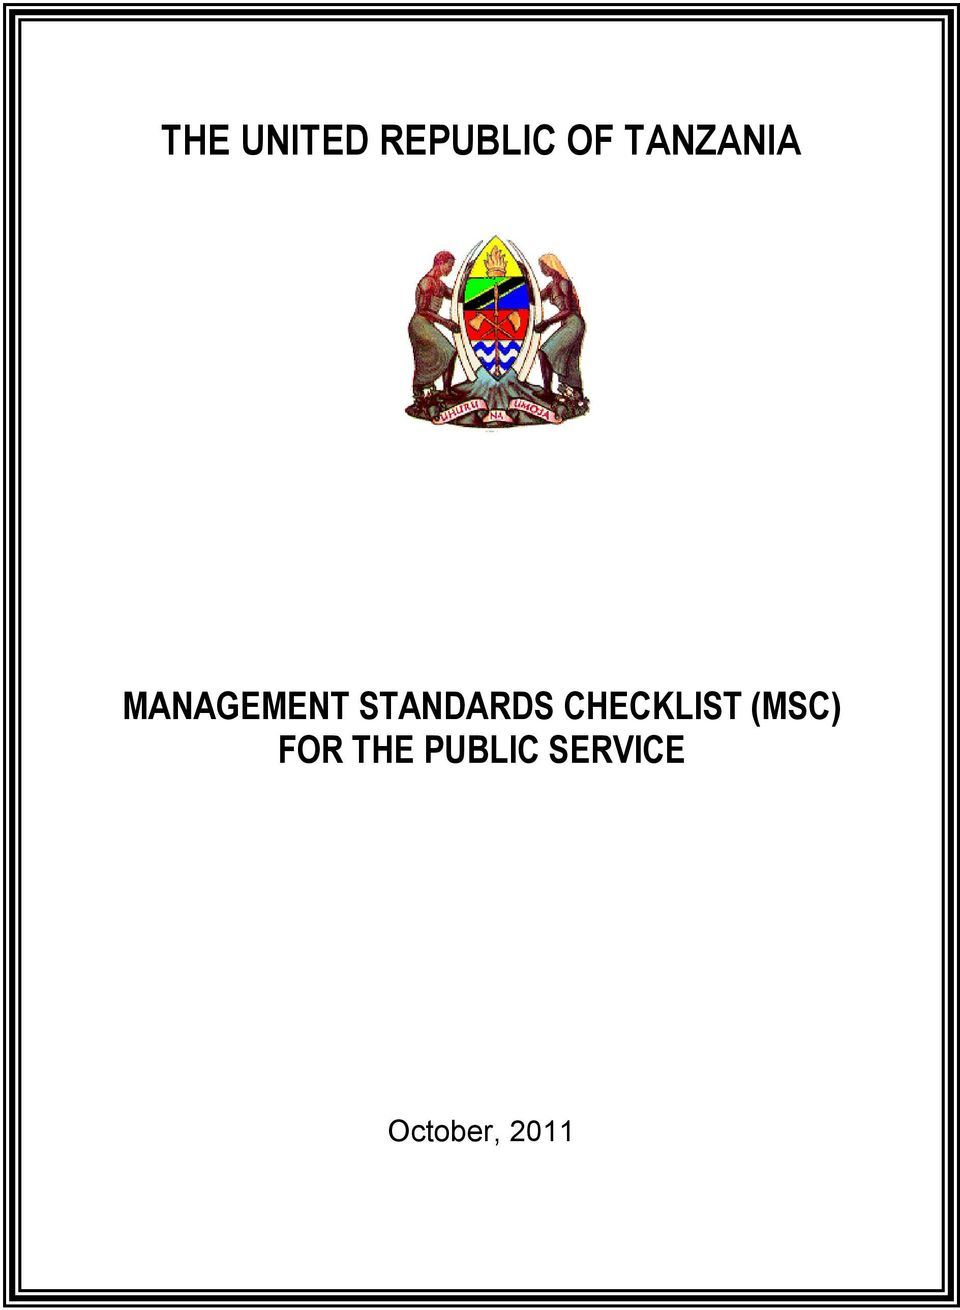 STANDARDS CHECKLIST (MSC)